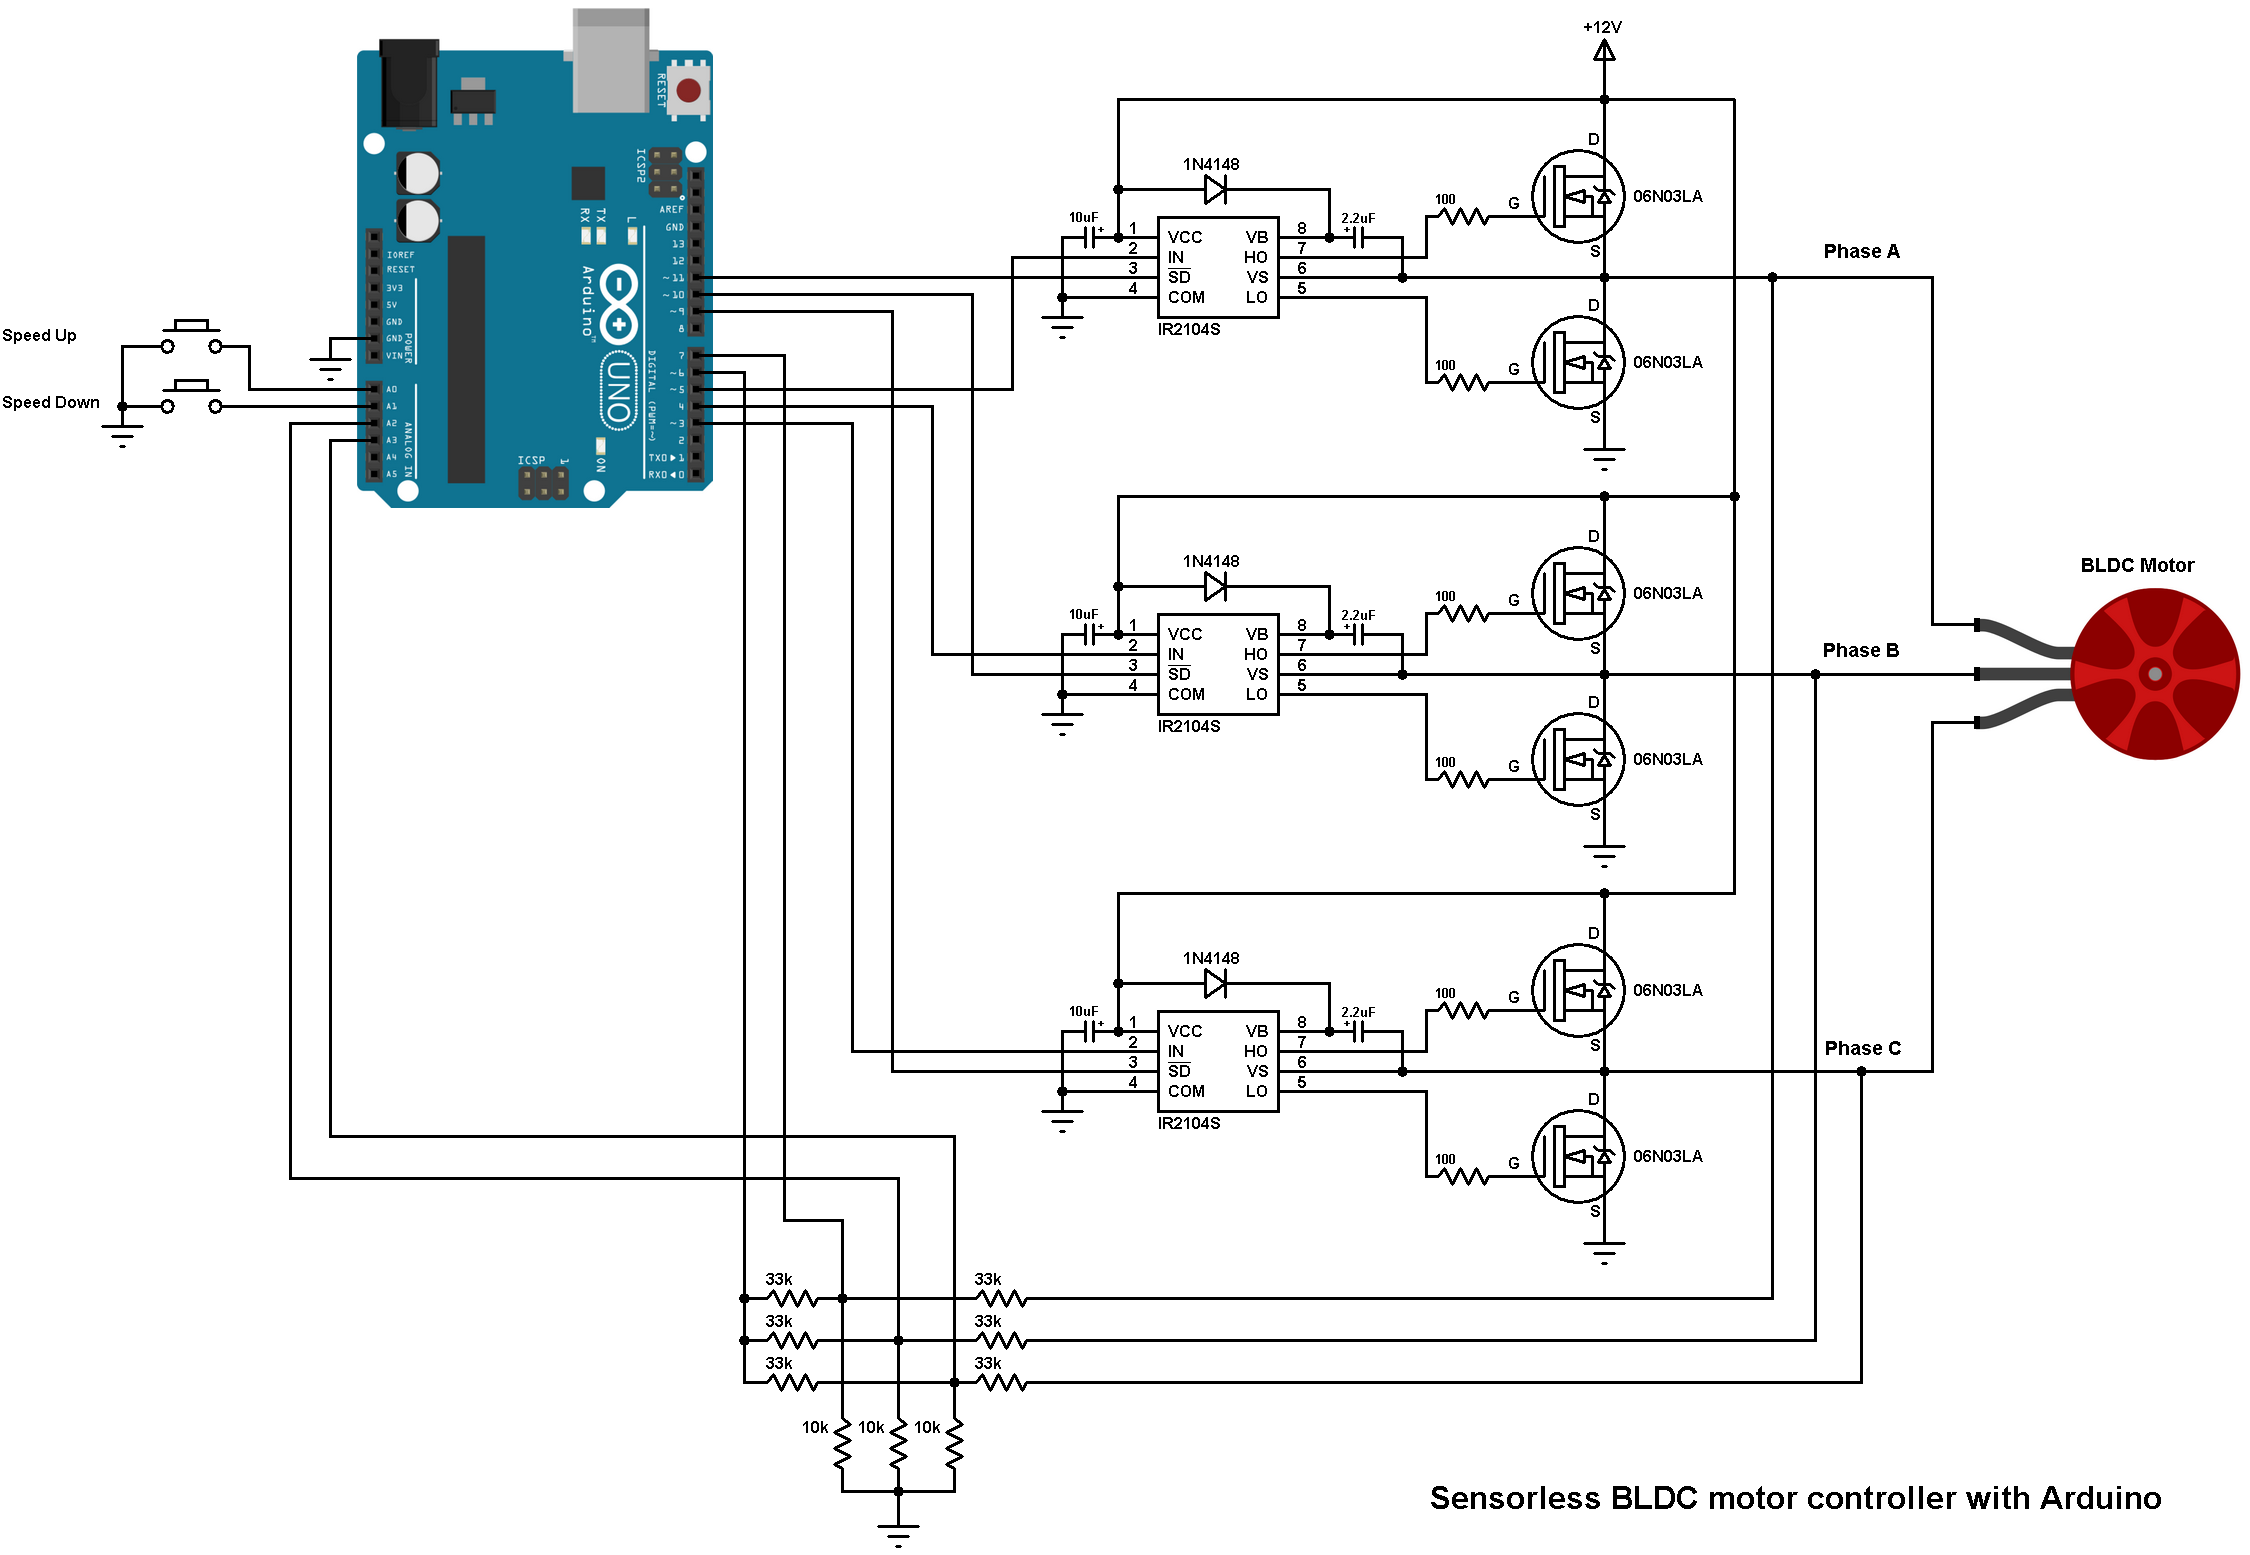 Sensorless Bldc Motor Control With Arduino Diy Esc Simple Projects Understand Dc Circuit Operation Controller